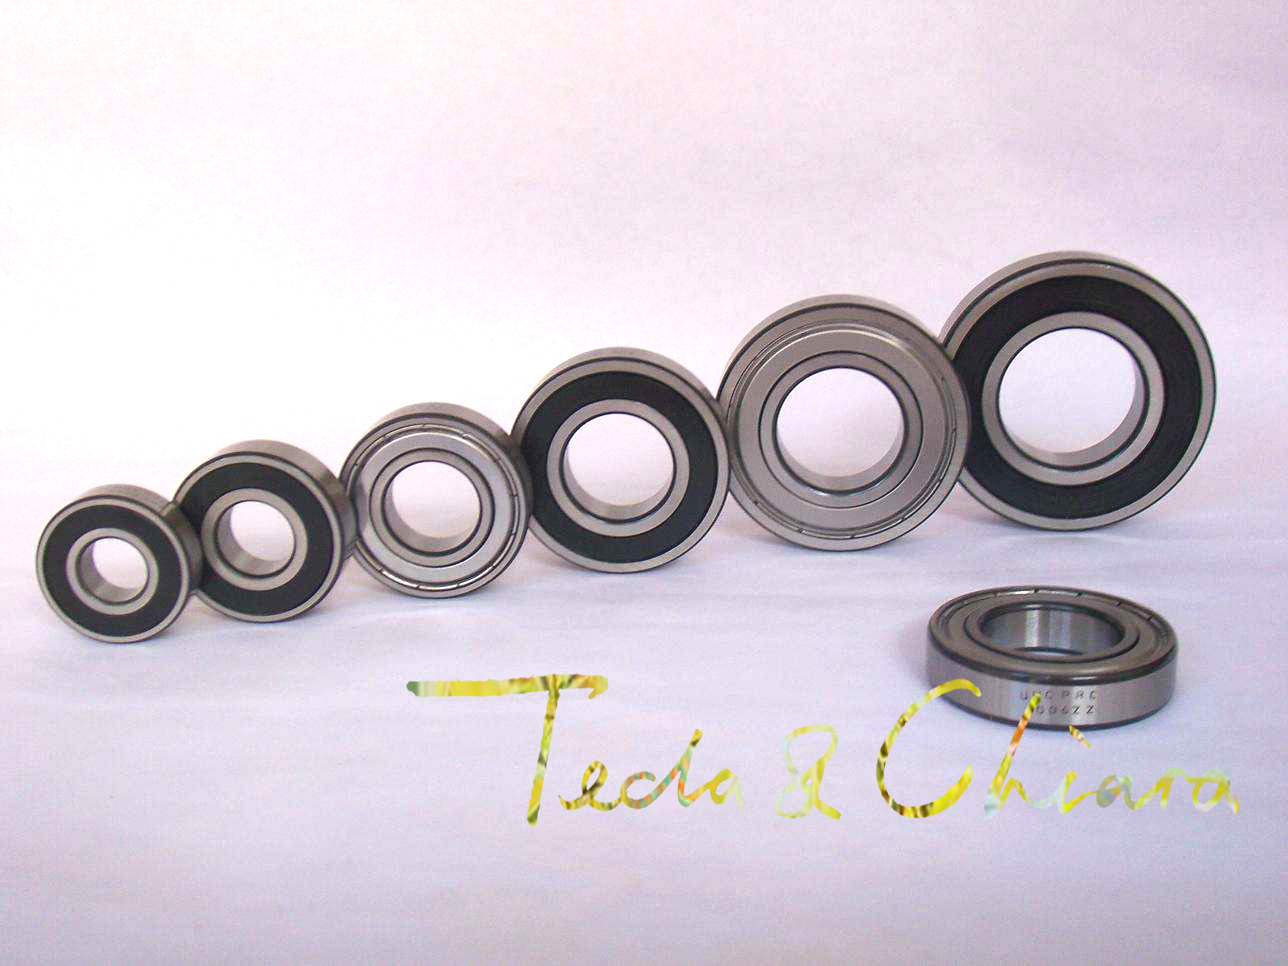 6700 6700ZZ 6700RS 6700-2Z 6700Z 6700-2RS ZZ RS RZ 2RZ Deep Groove Ball Bearings 10 x 15 x 4mm High Quality gcr15 6328 zz or 6328 2rs 140x300x62mm high precision deep groove ball bearings abec 1 p0